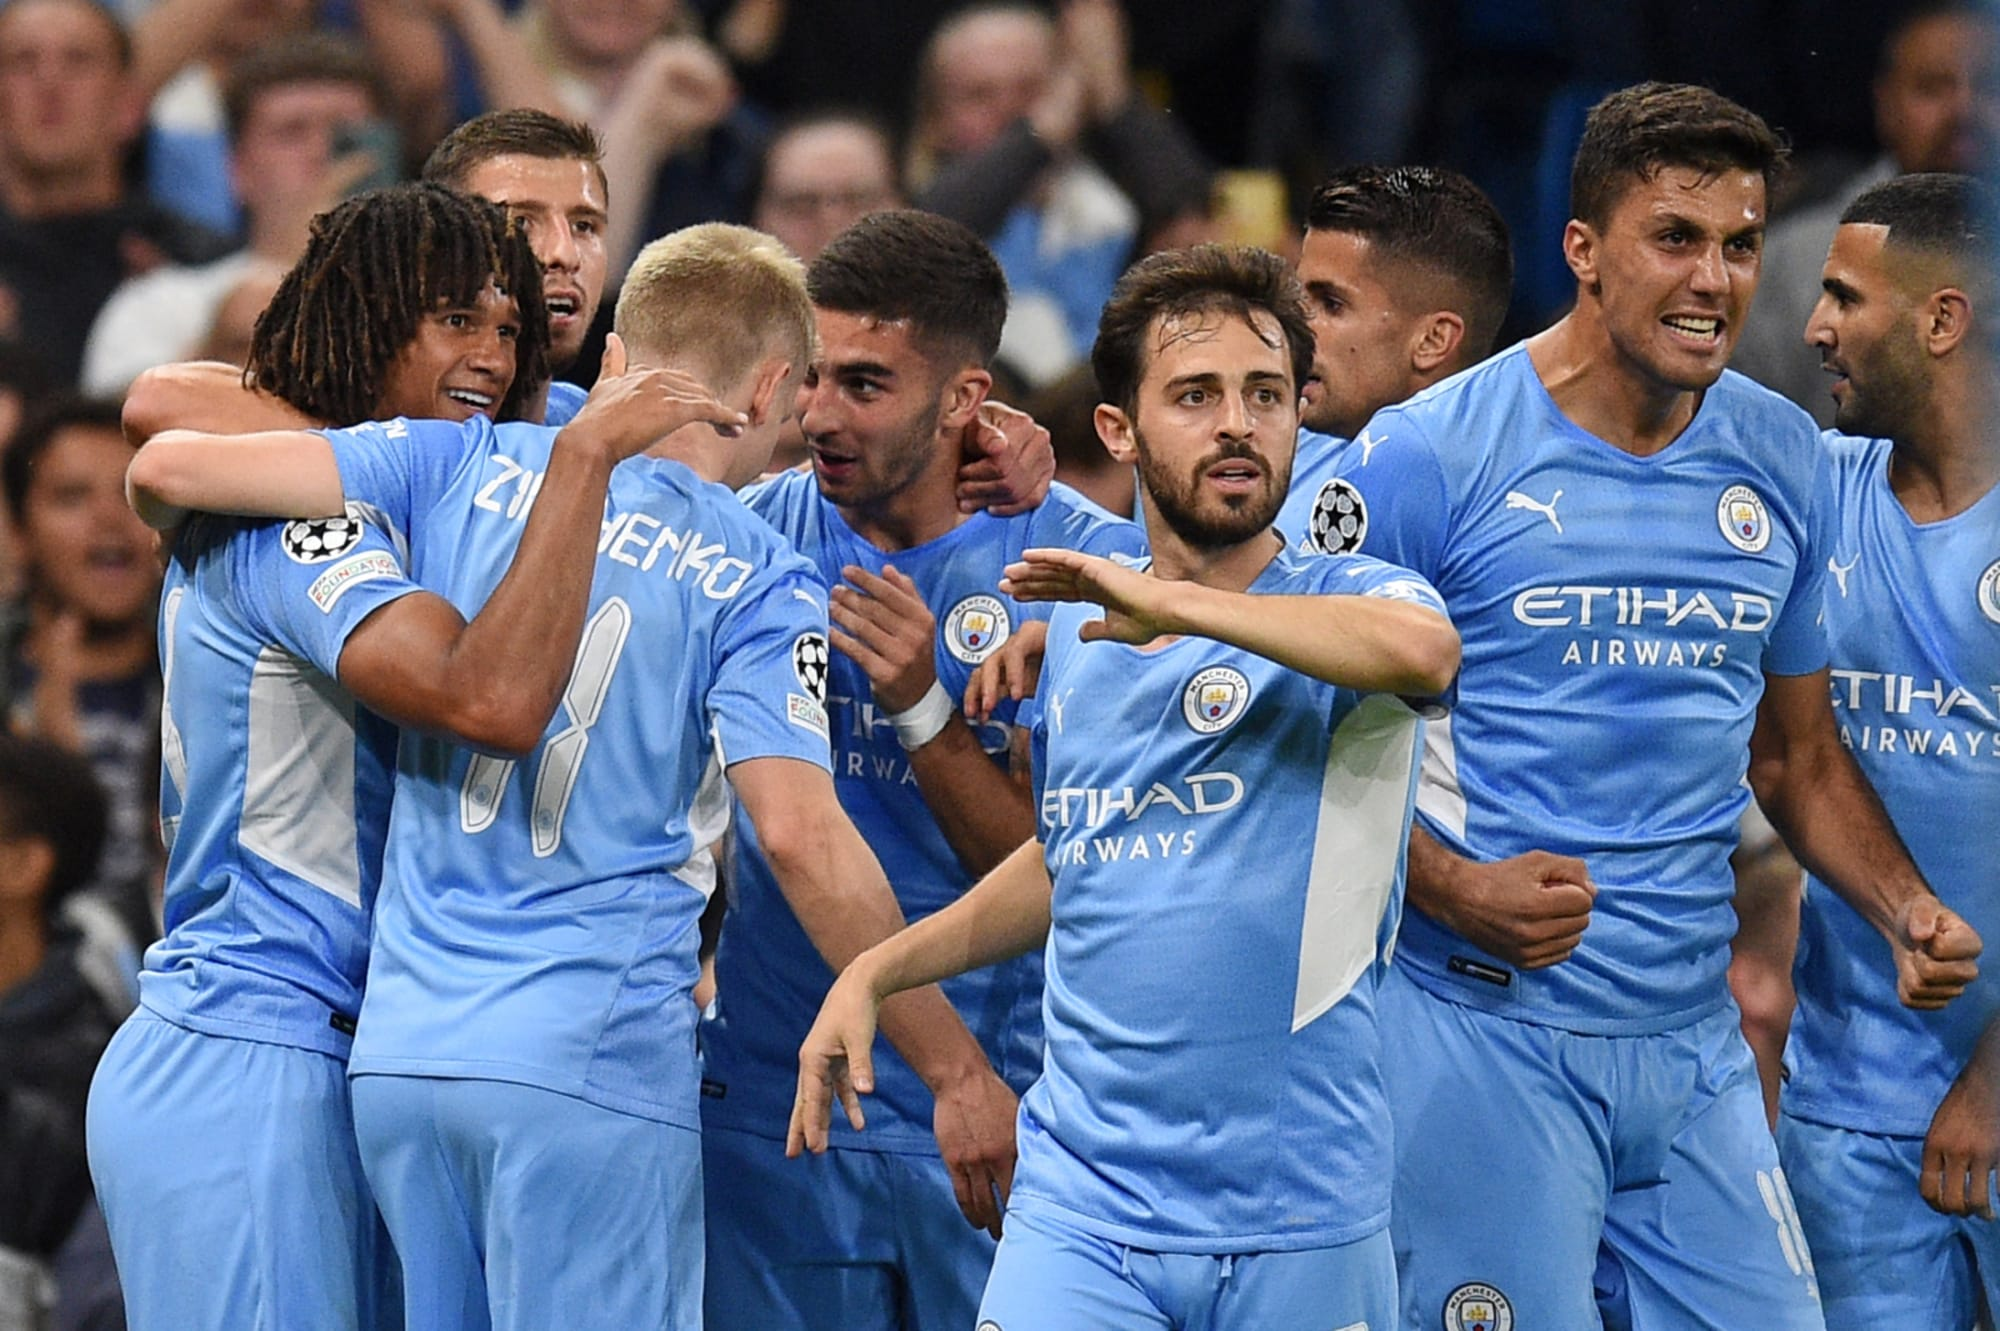 Manchester City's players to be axed for Haaland's transfer